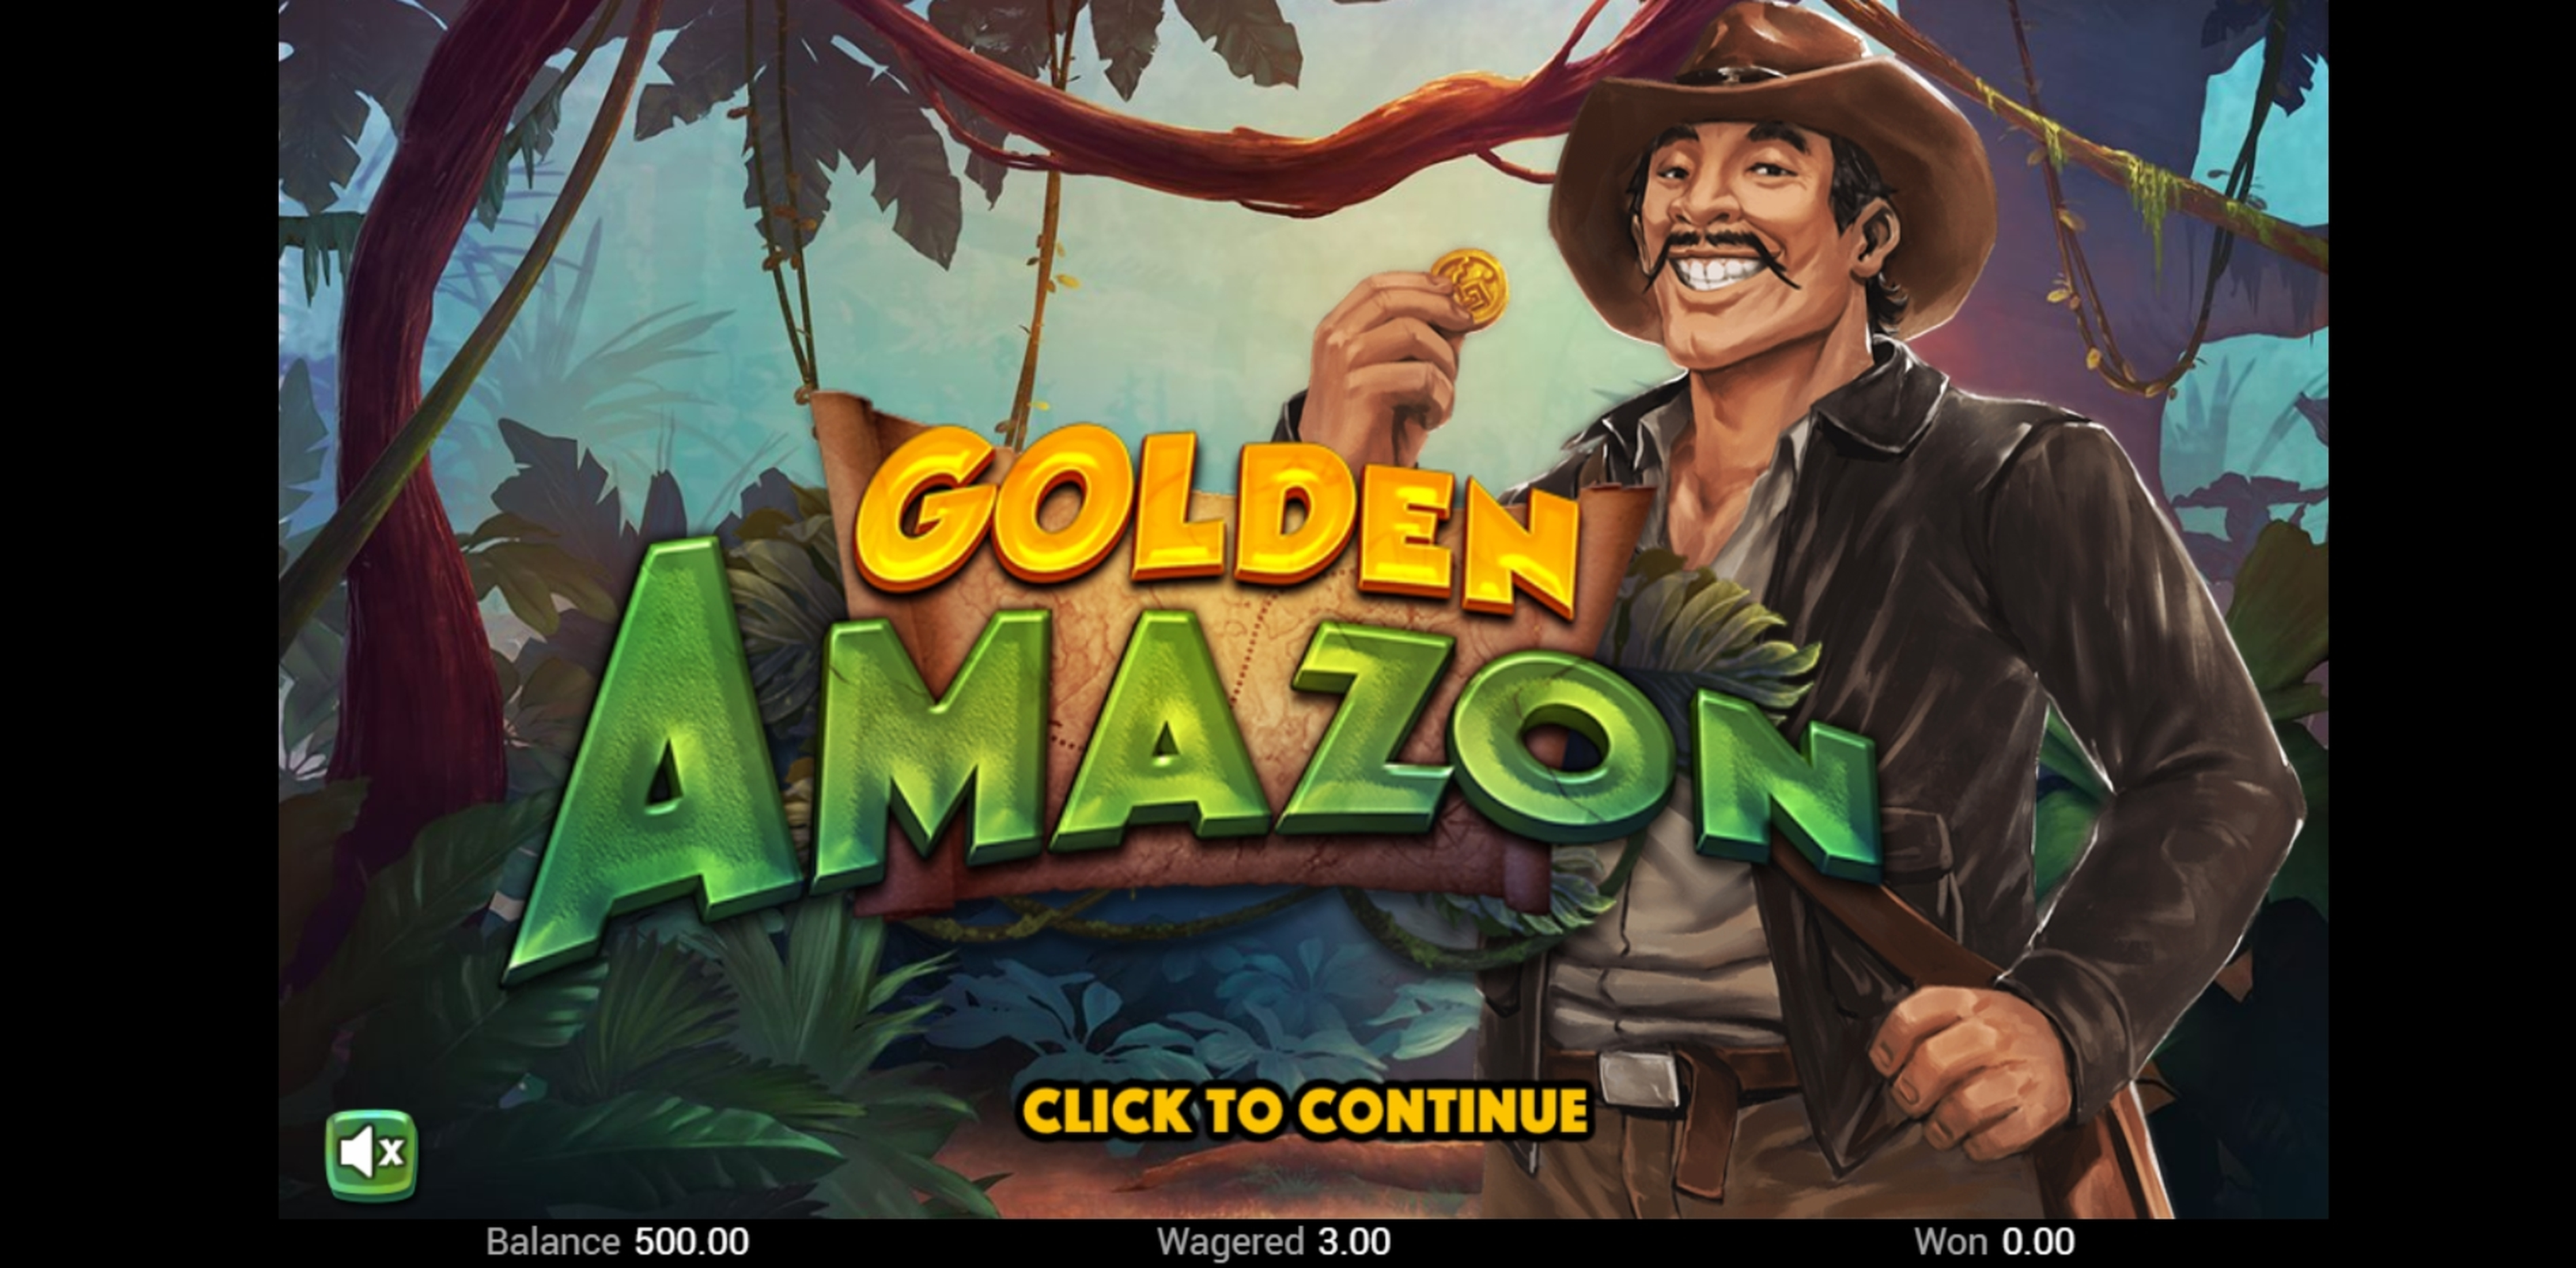 Win Money in Golden Amazon Free Slot Game by Swintt